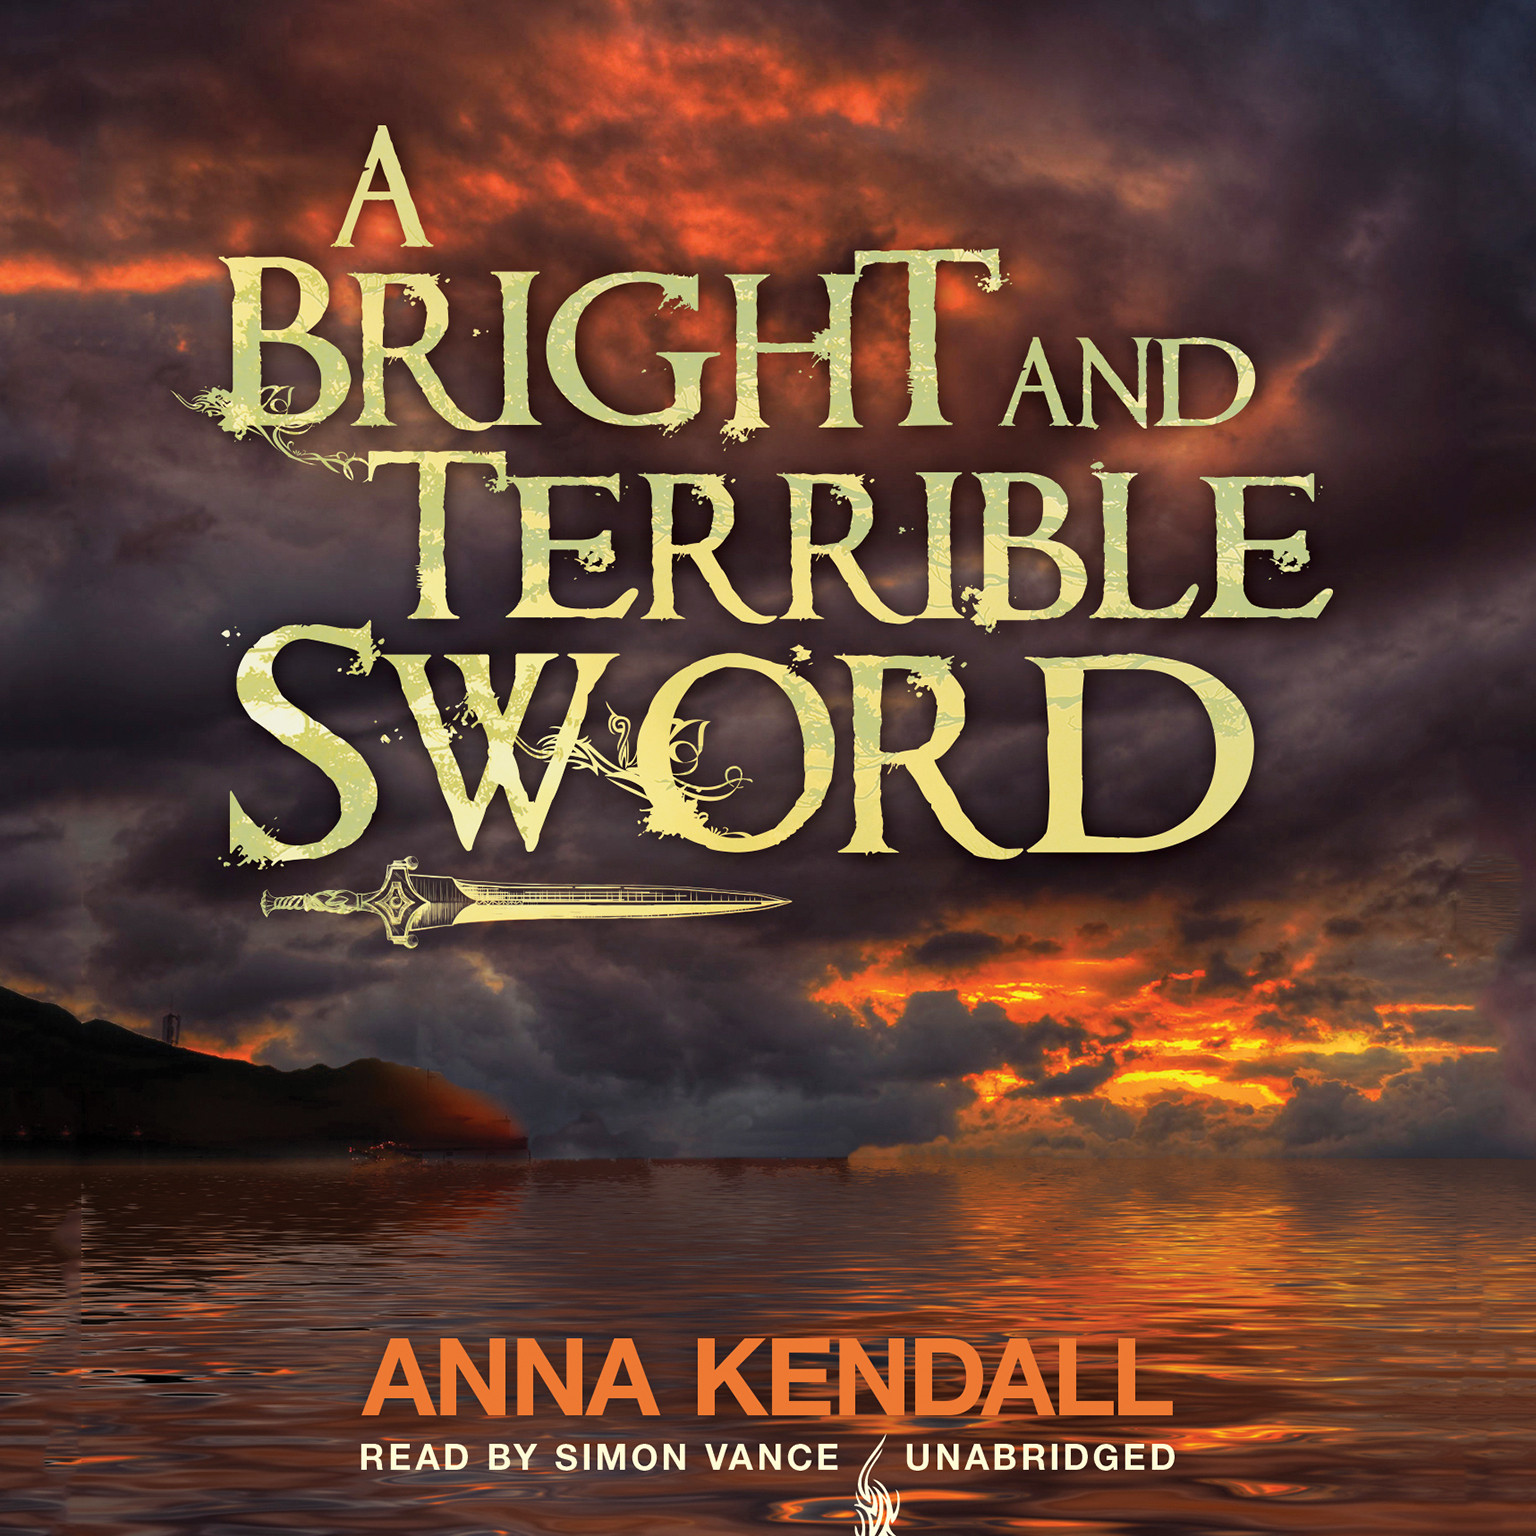 Printable A Bright and Terrible Sword Audiobook Cover Art